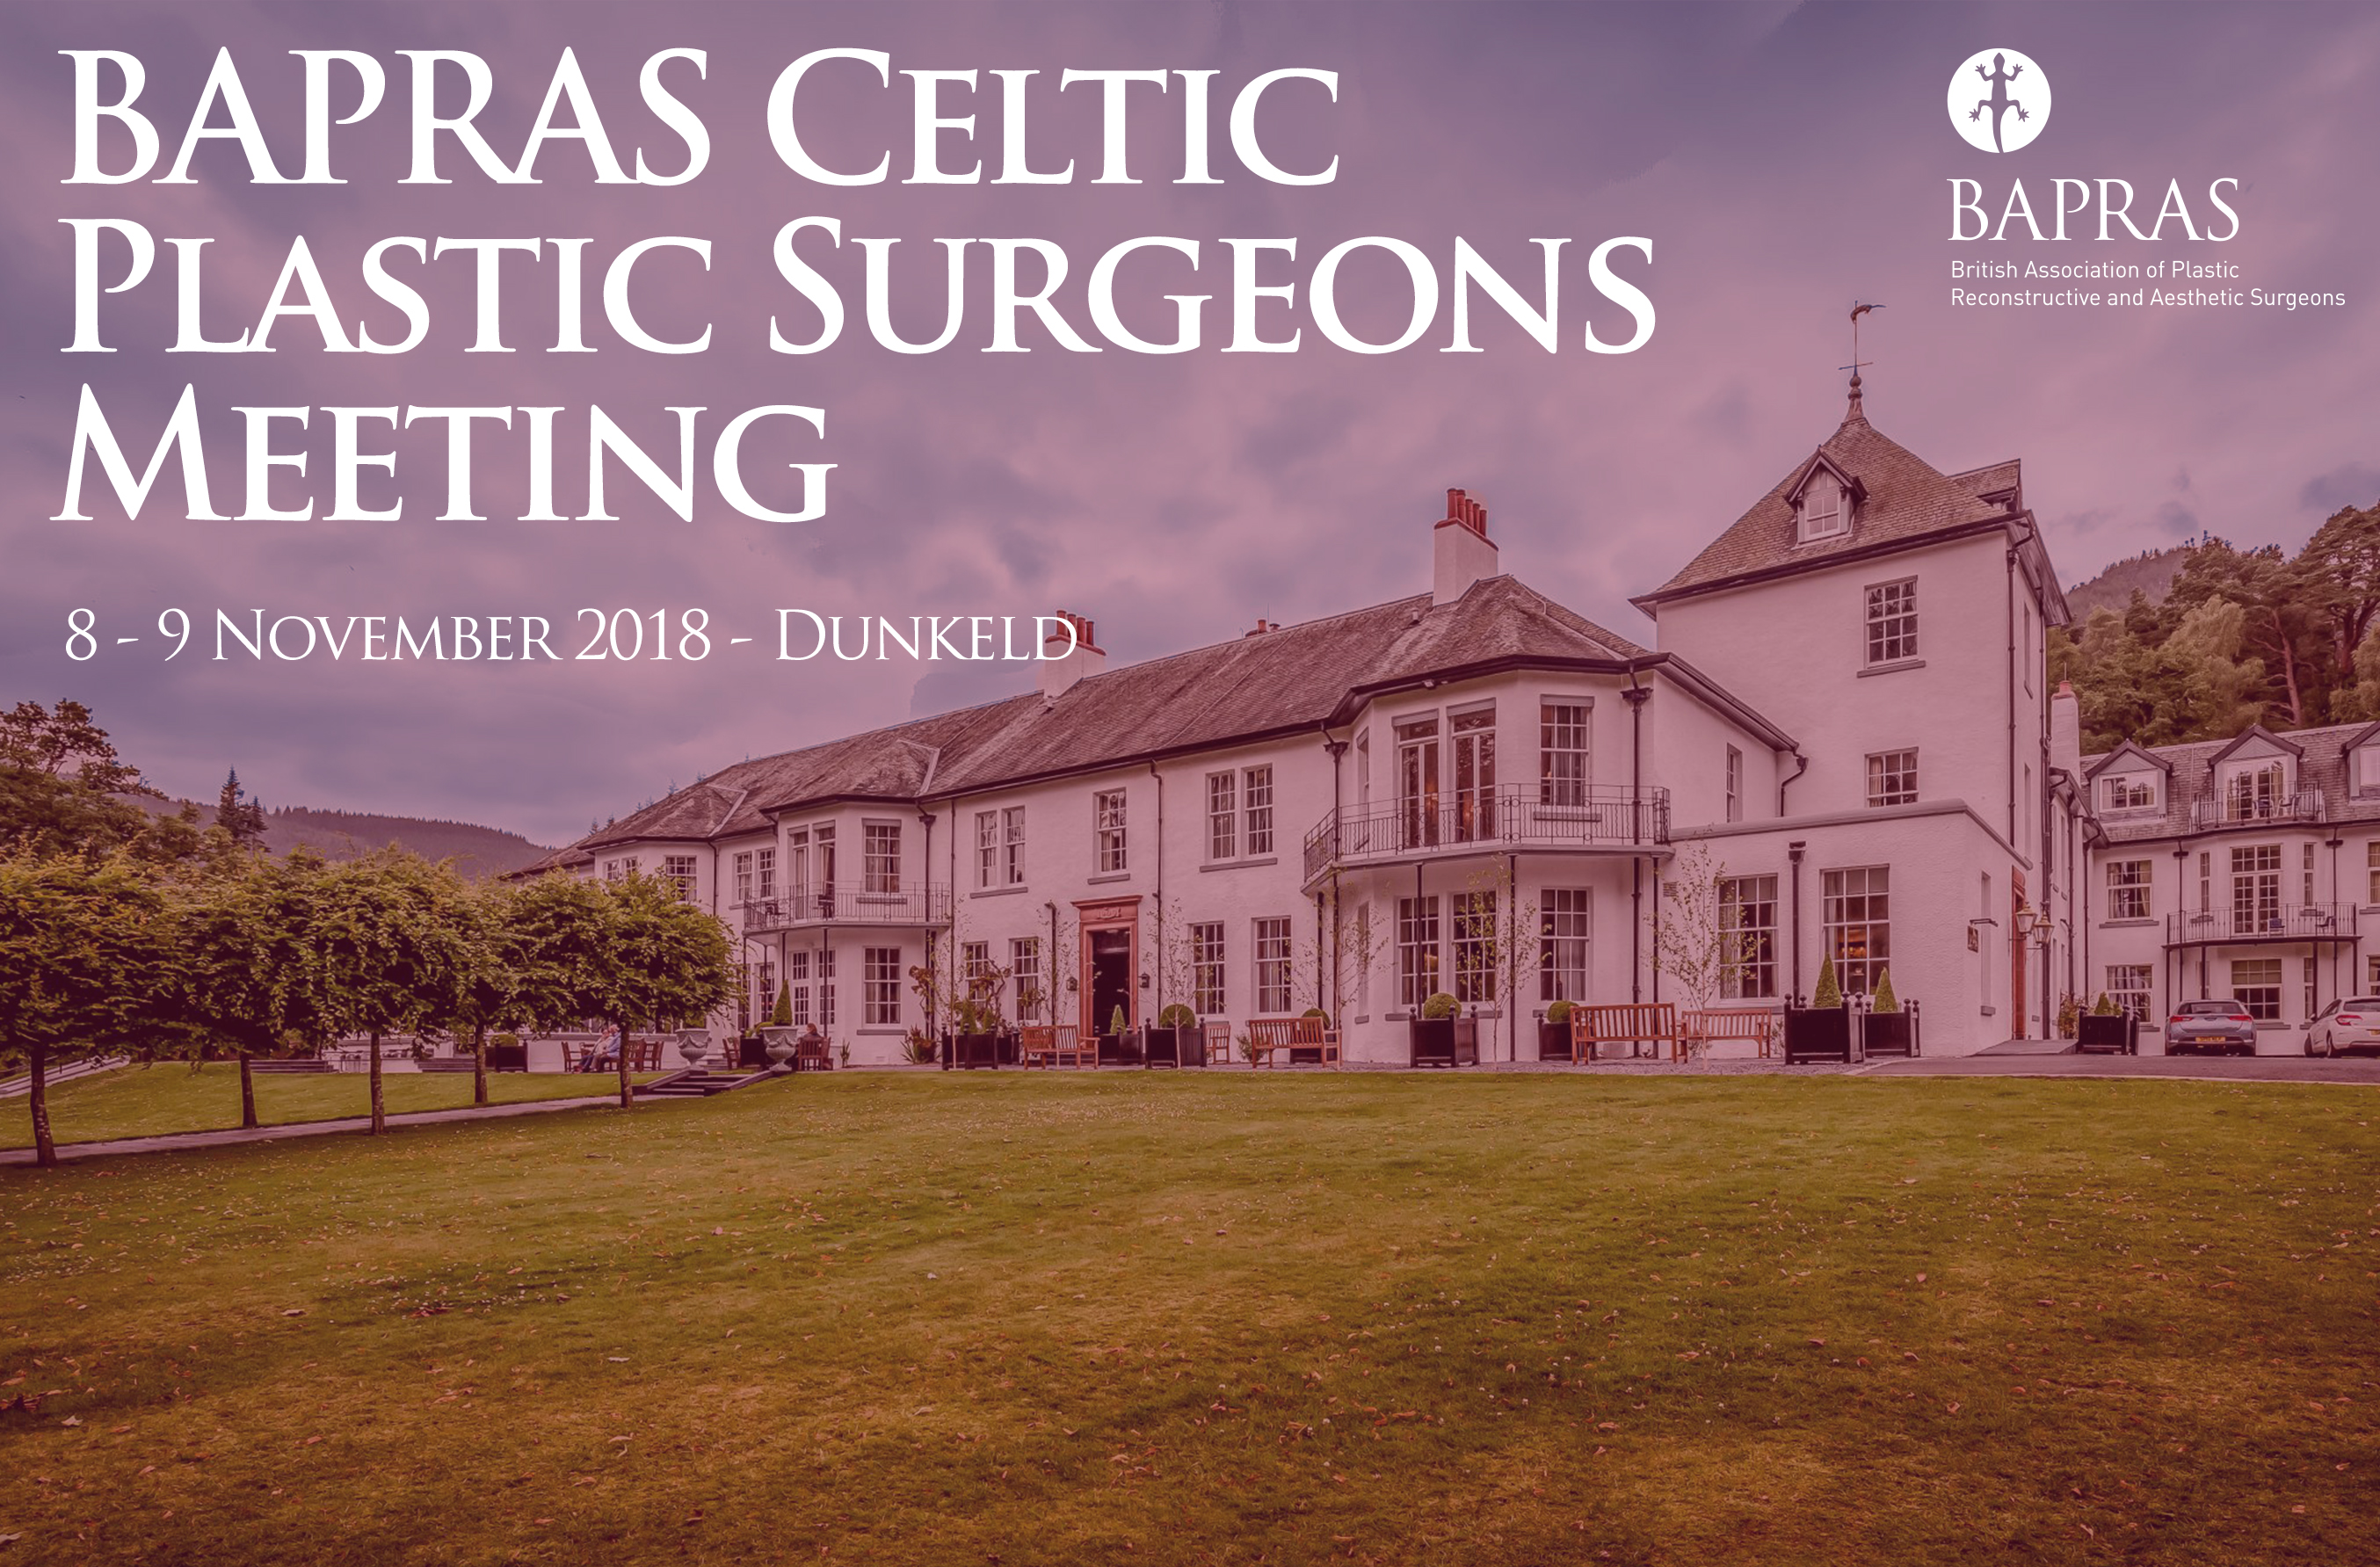 BAPRAS Celtic Meeting Summary